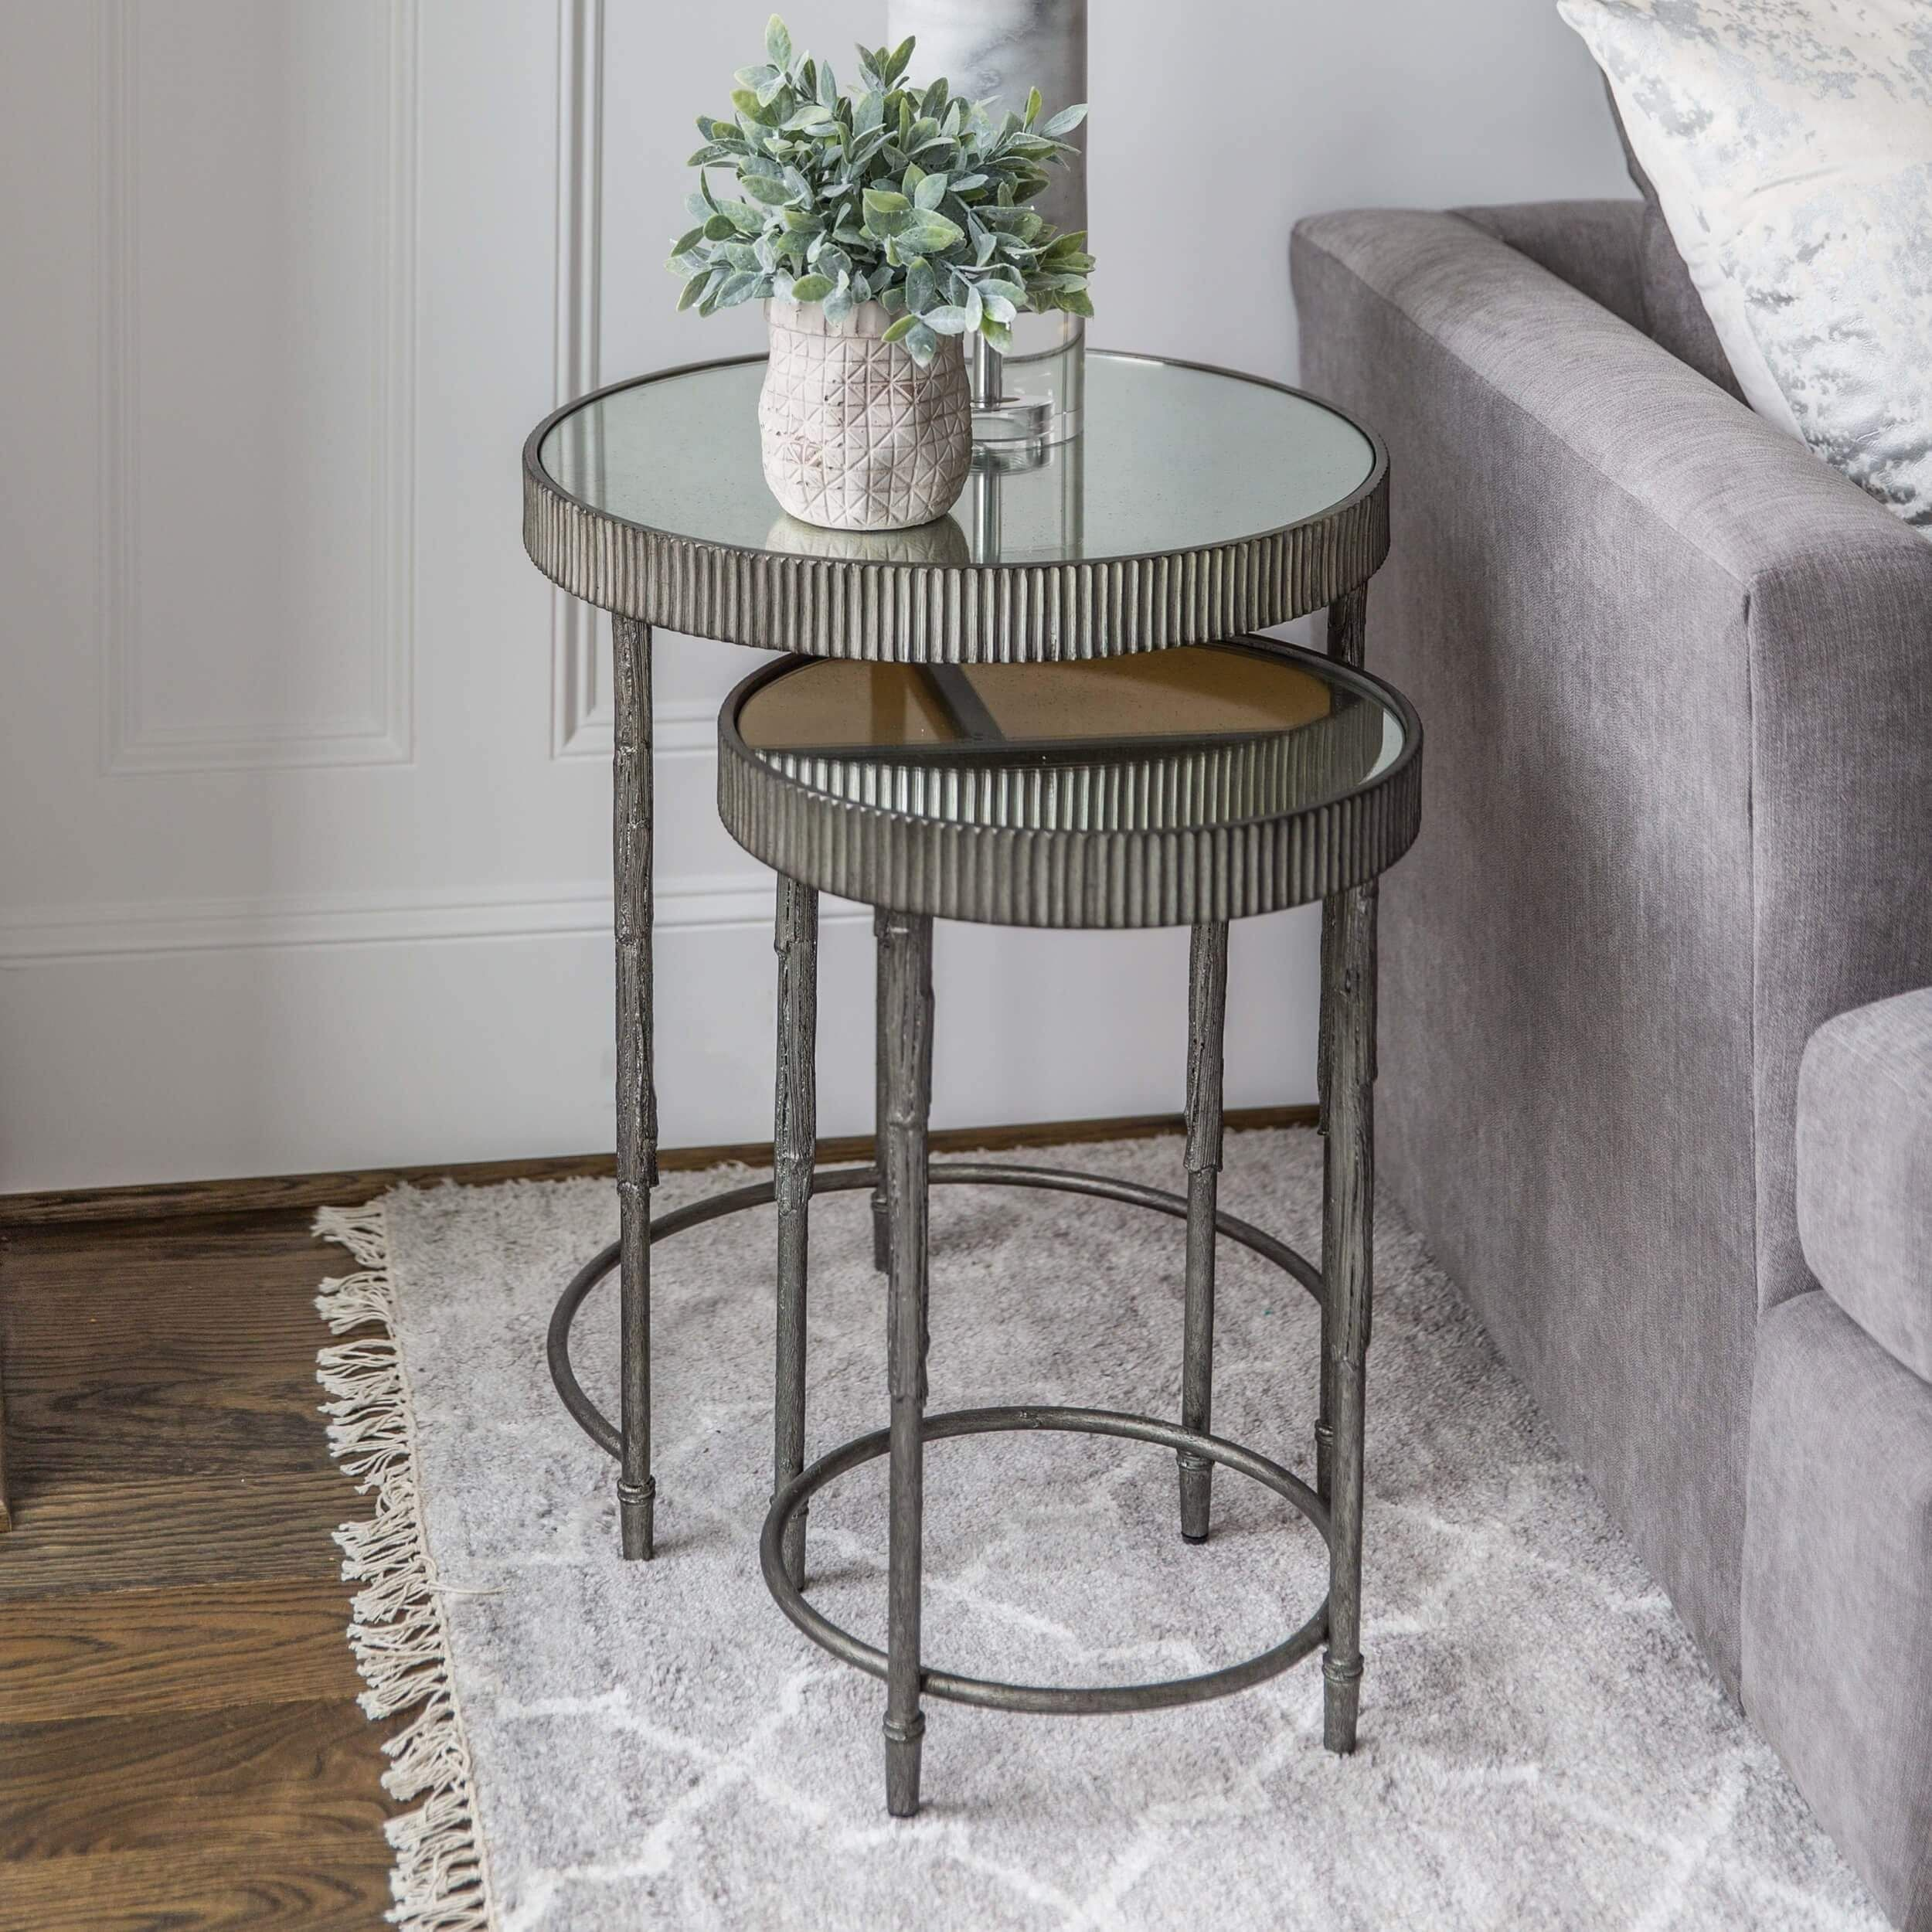 Accent Nesting Tables Silver Set Of 2 In 2021 Nesting Tables Living Room Nesting Tables Living Room Decor Neutral [ 2500 x 2500 Pixel ]